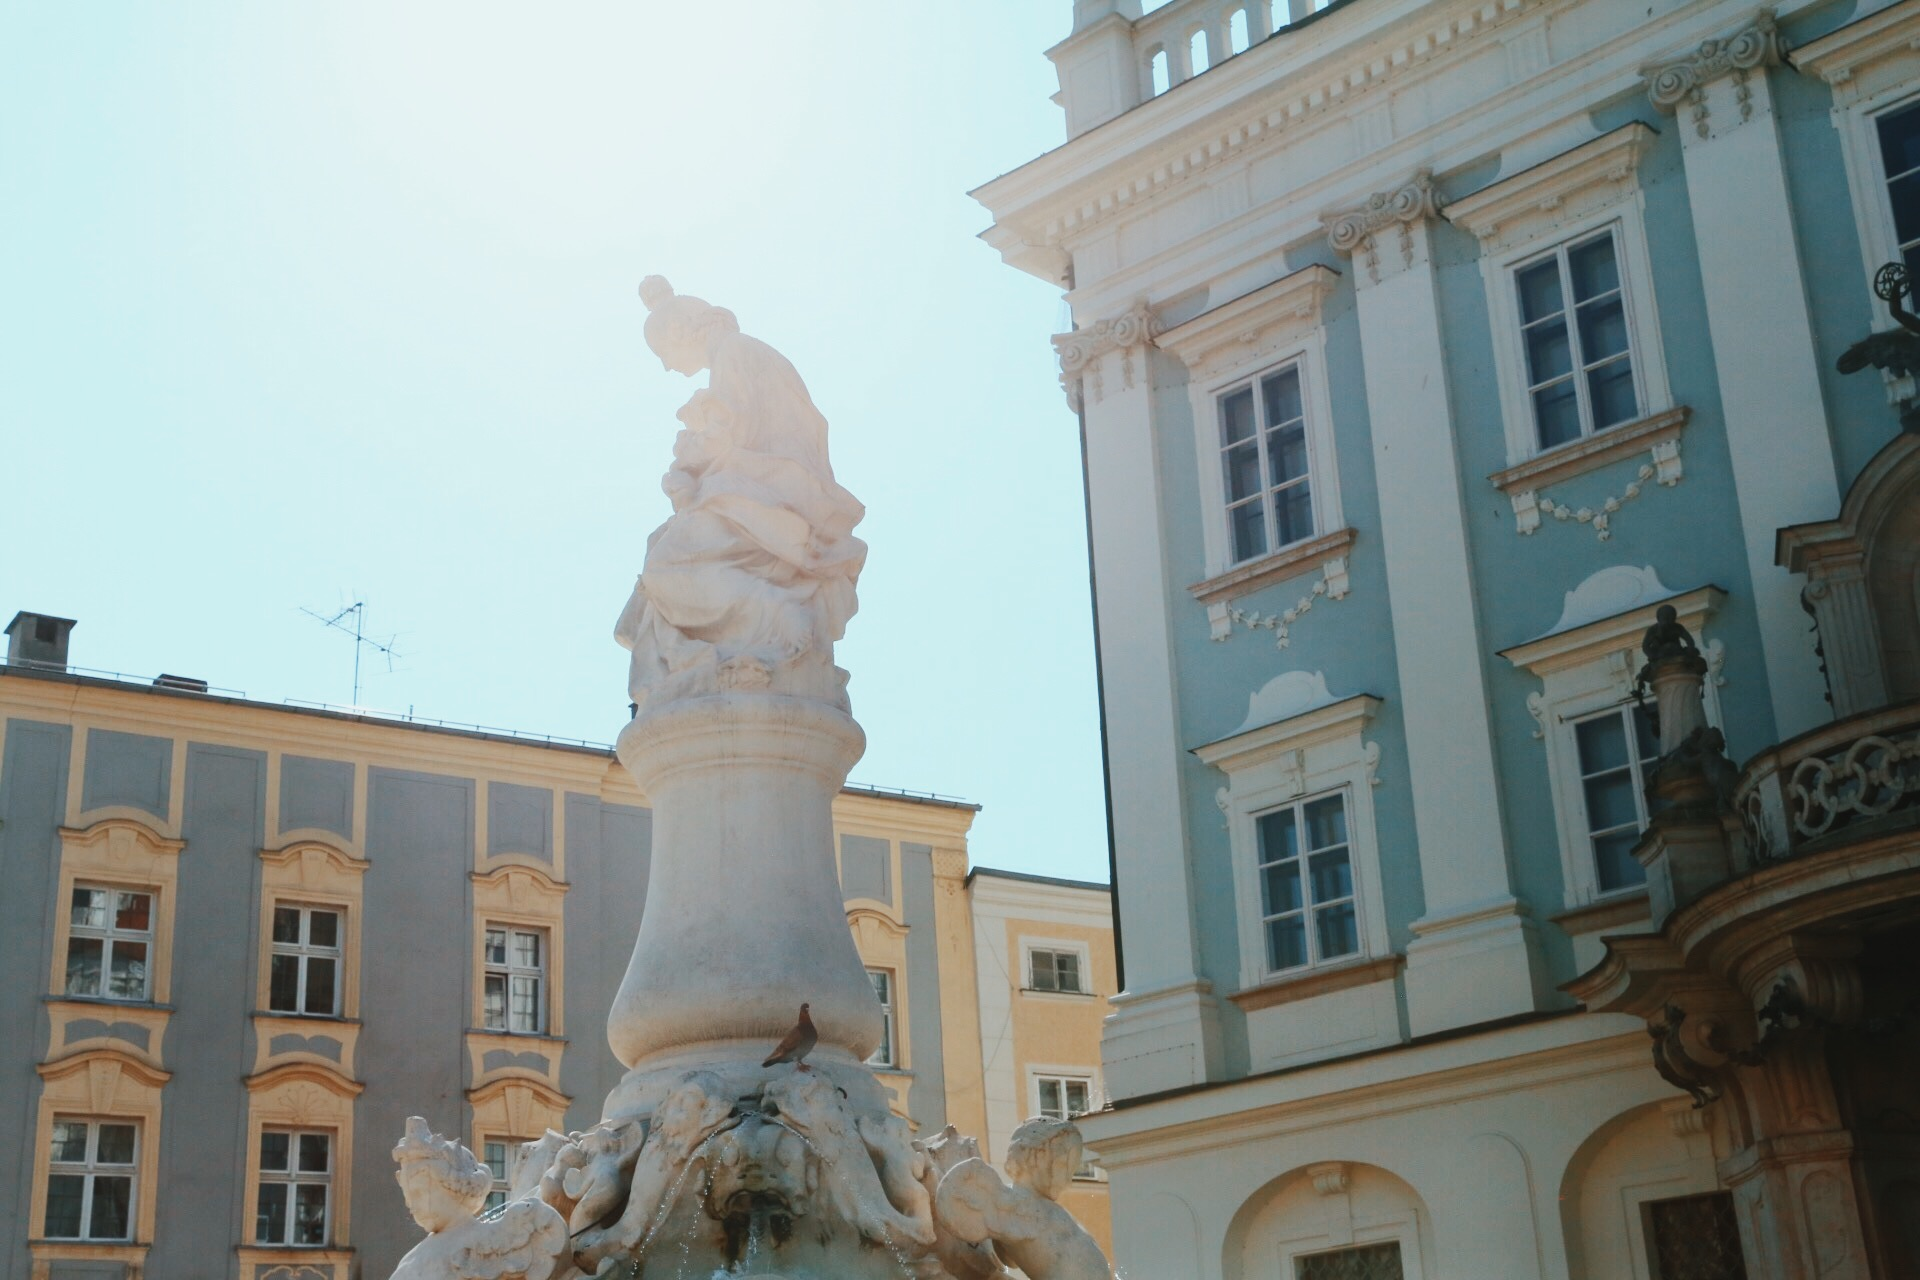 Wittelsbach Fountain in Passau